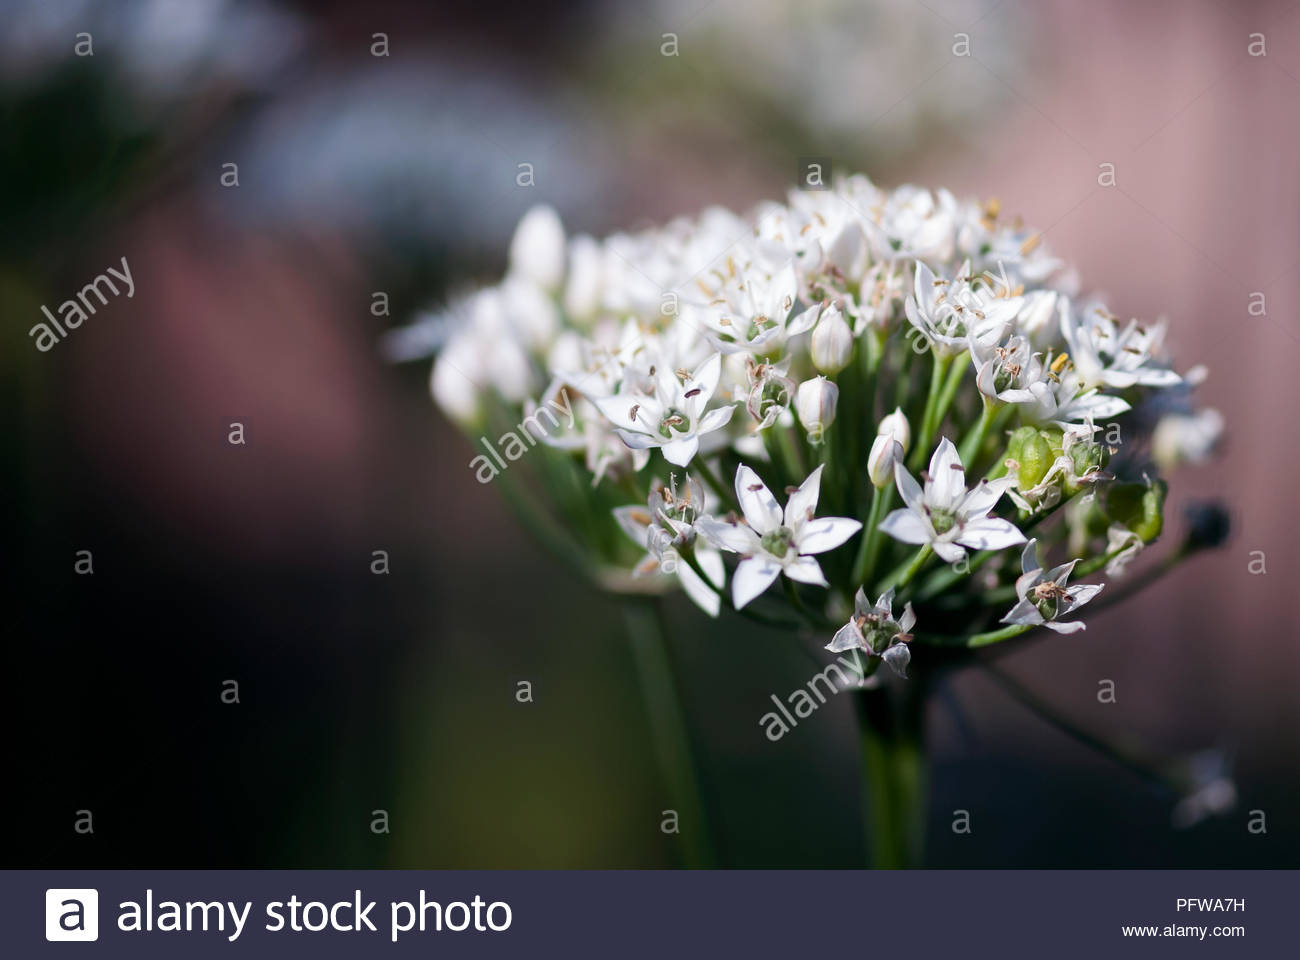 Delicate White Allium Flowers Bloom In A Summer Garden Stock Photo